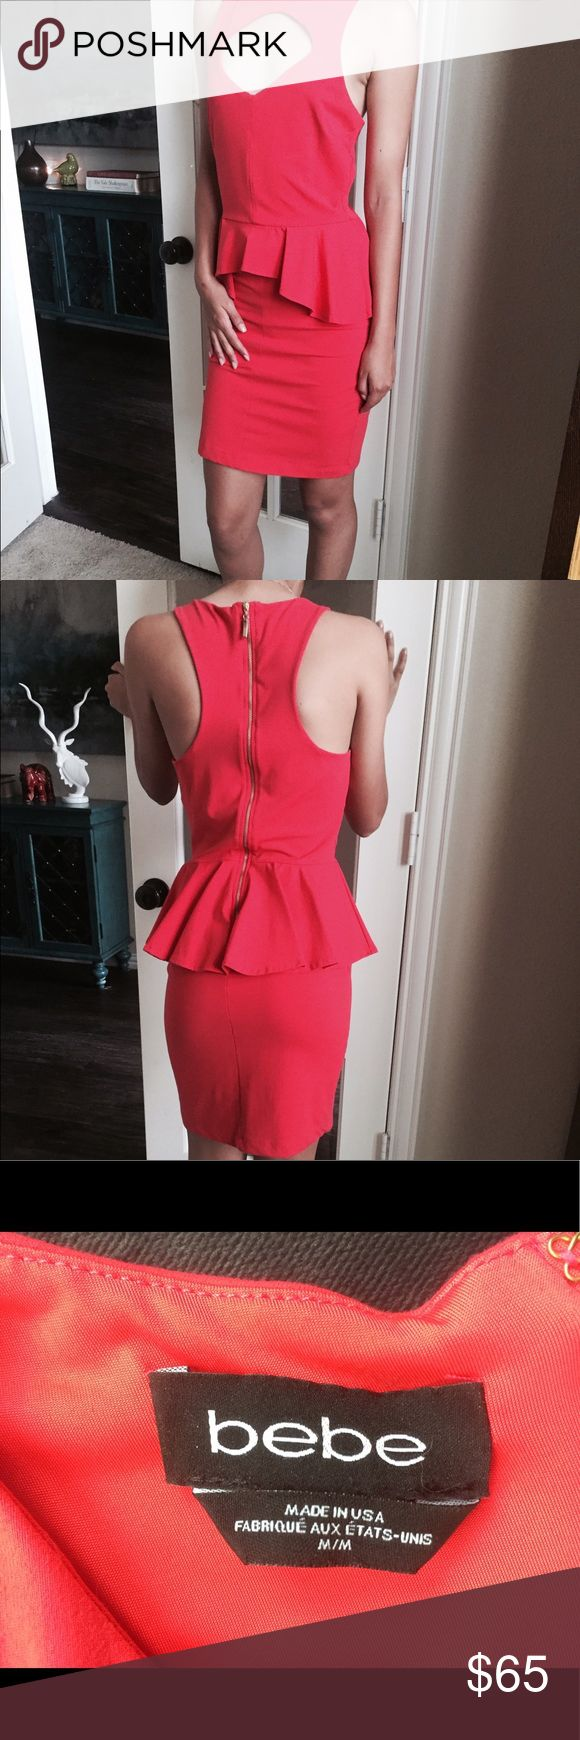 Red peplum midi Bebe dress Awesome LRD! Peplum, form fitting, keyhole neck, razor back, gold zipper. Wore once on Valentines. bebe Dresses Midi